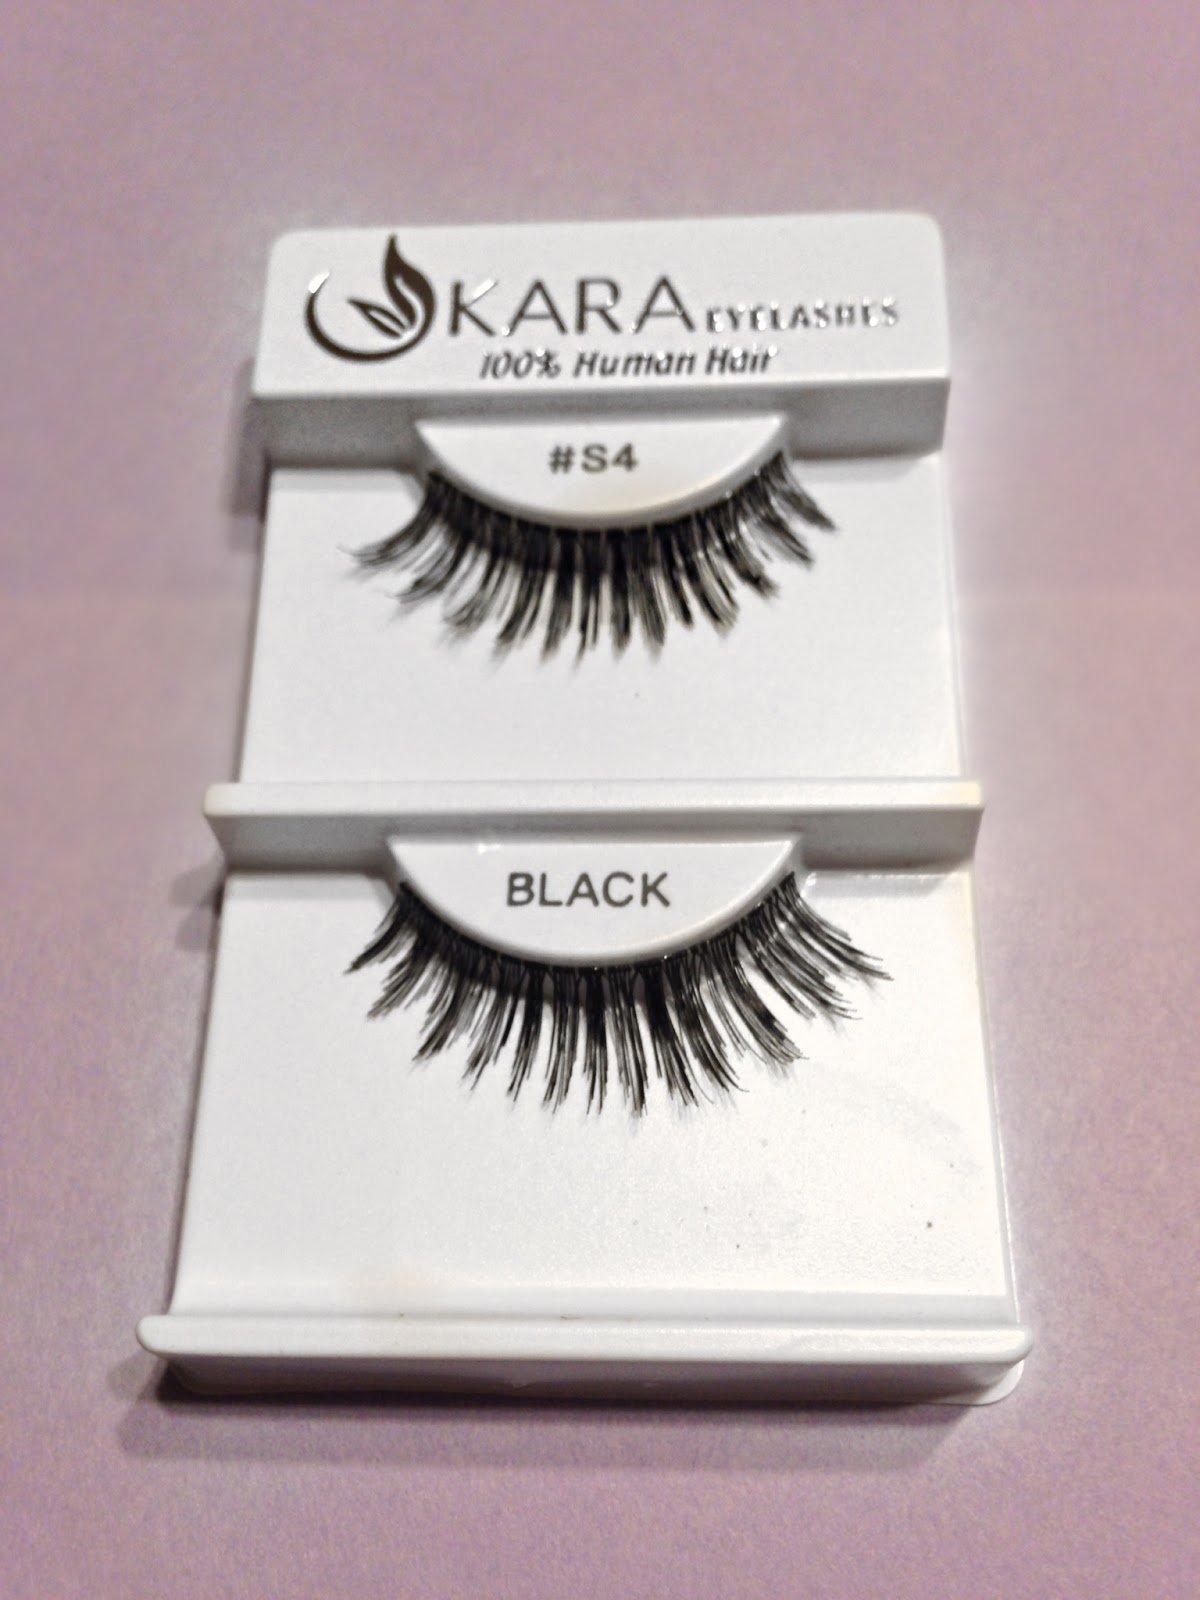 8603fc66dd3 On this website, two brands of lashes are offered... Kara and Kleancolor.  I'm going to be so explicit here and say I have tried the Kleancolor lashes  and I ...